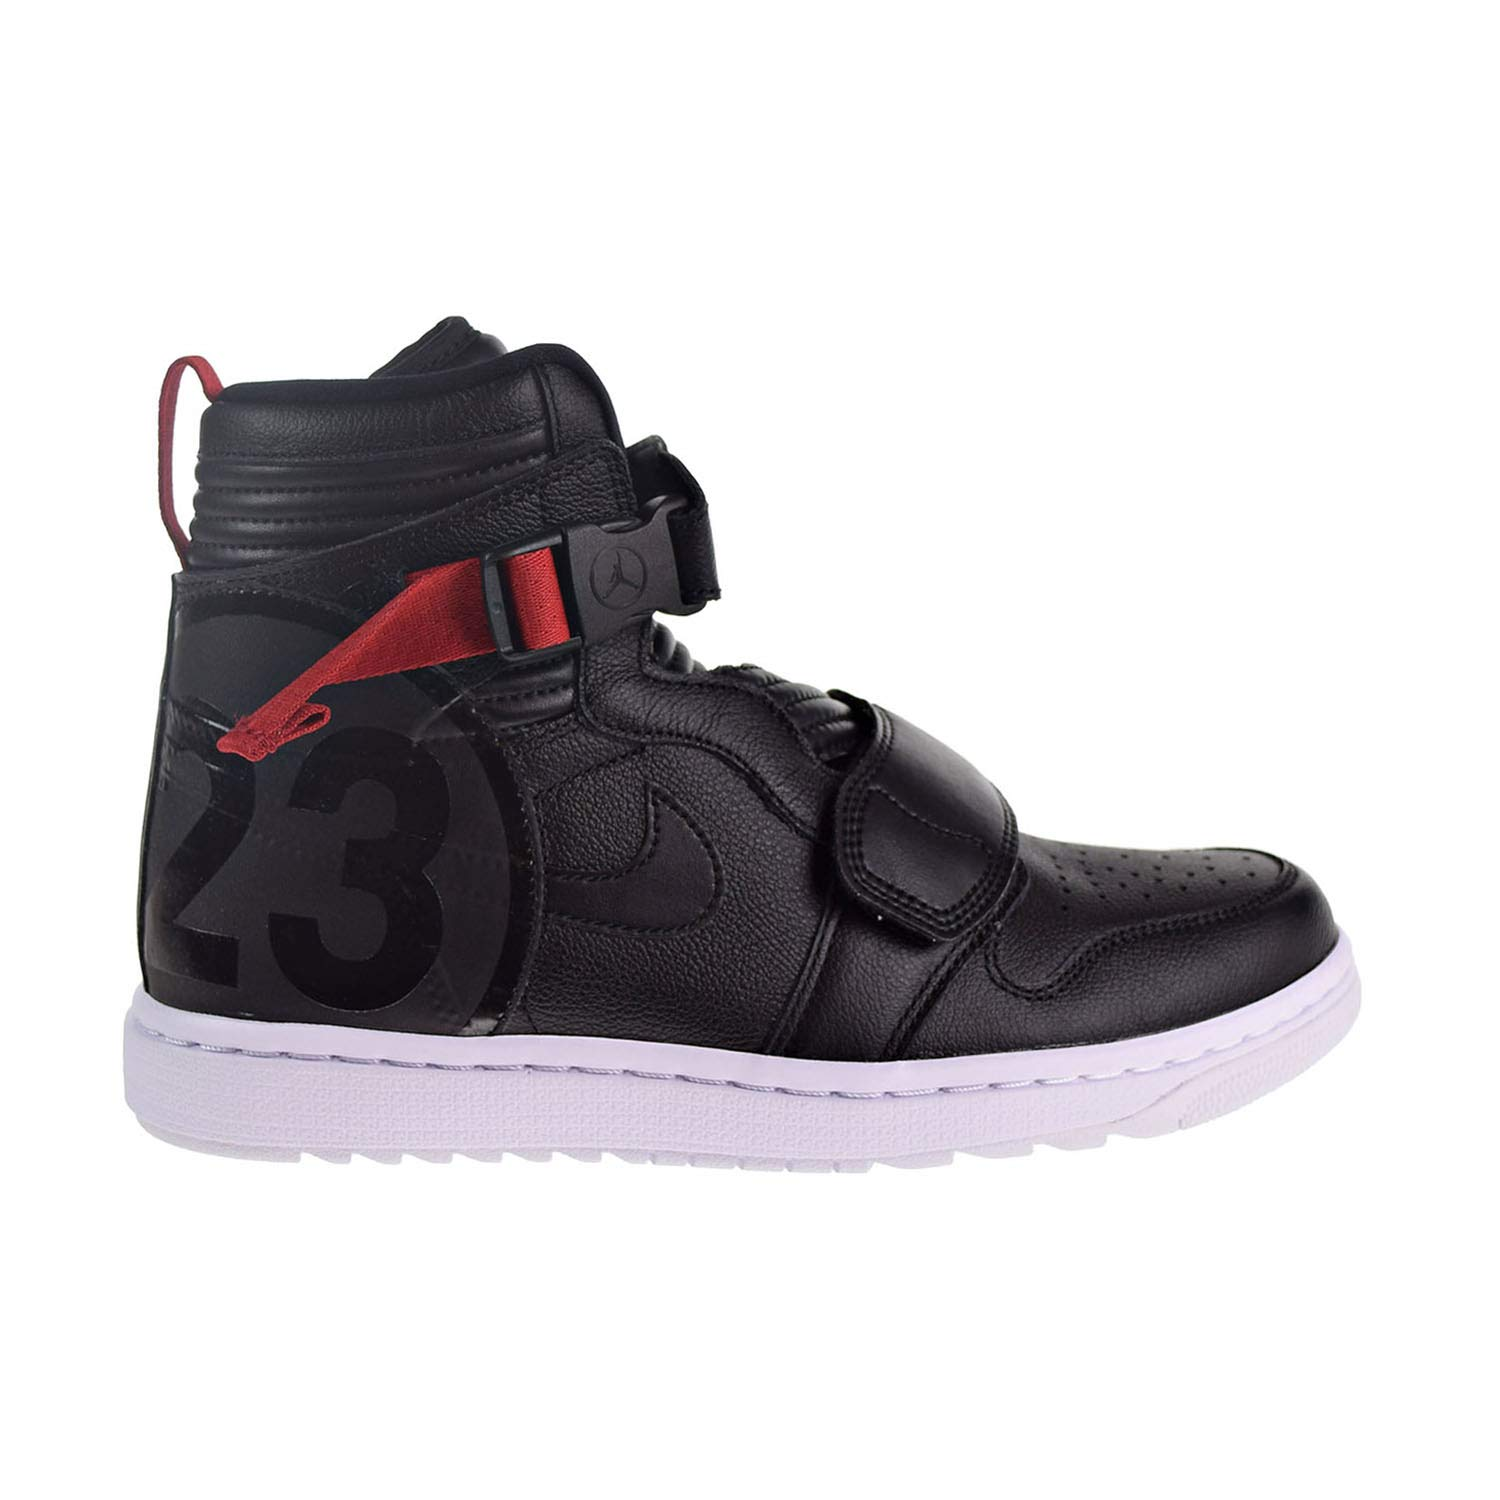 best service 63775 f80ef Amazon.com   Nike Air Jordan 1 Moto Men s Shoes Black Gym Red at3146-001    Fashion Sneakers